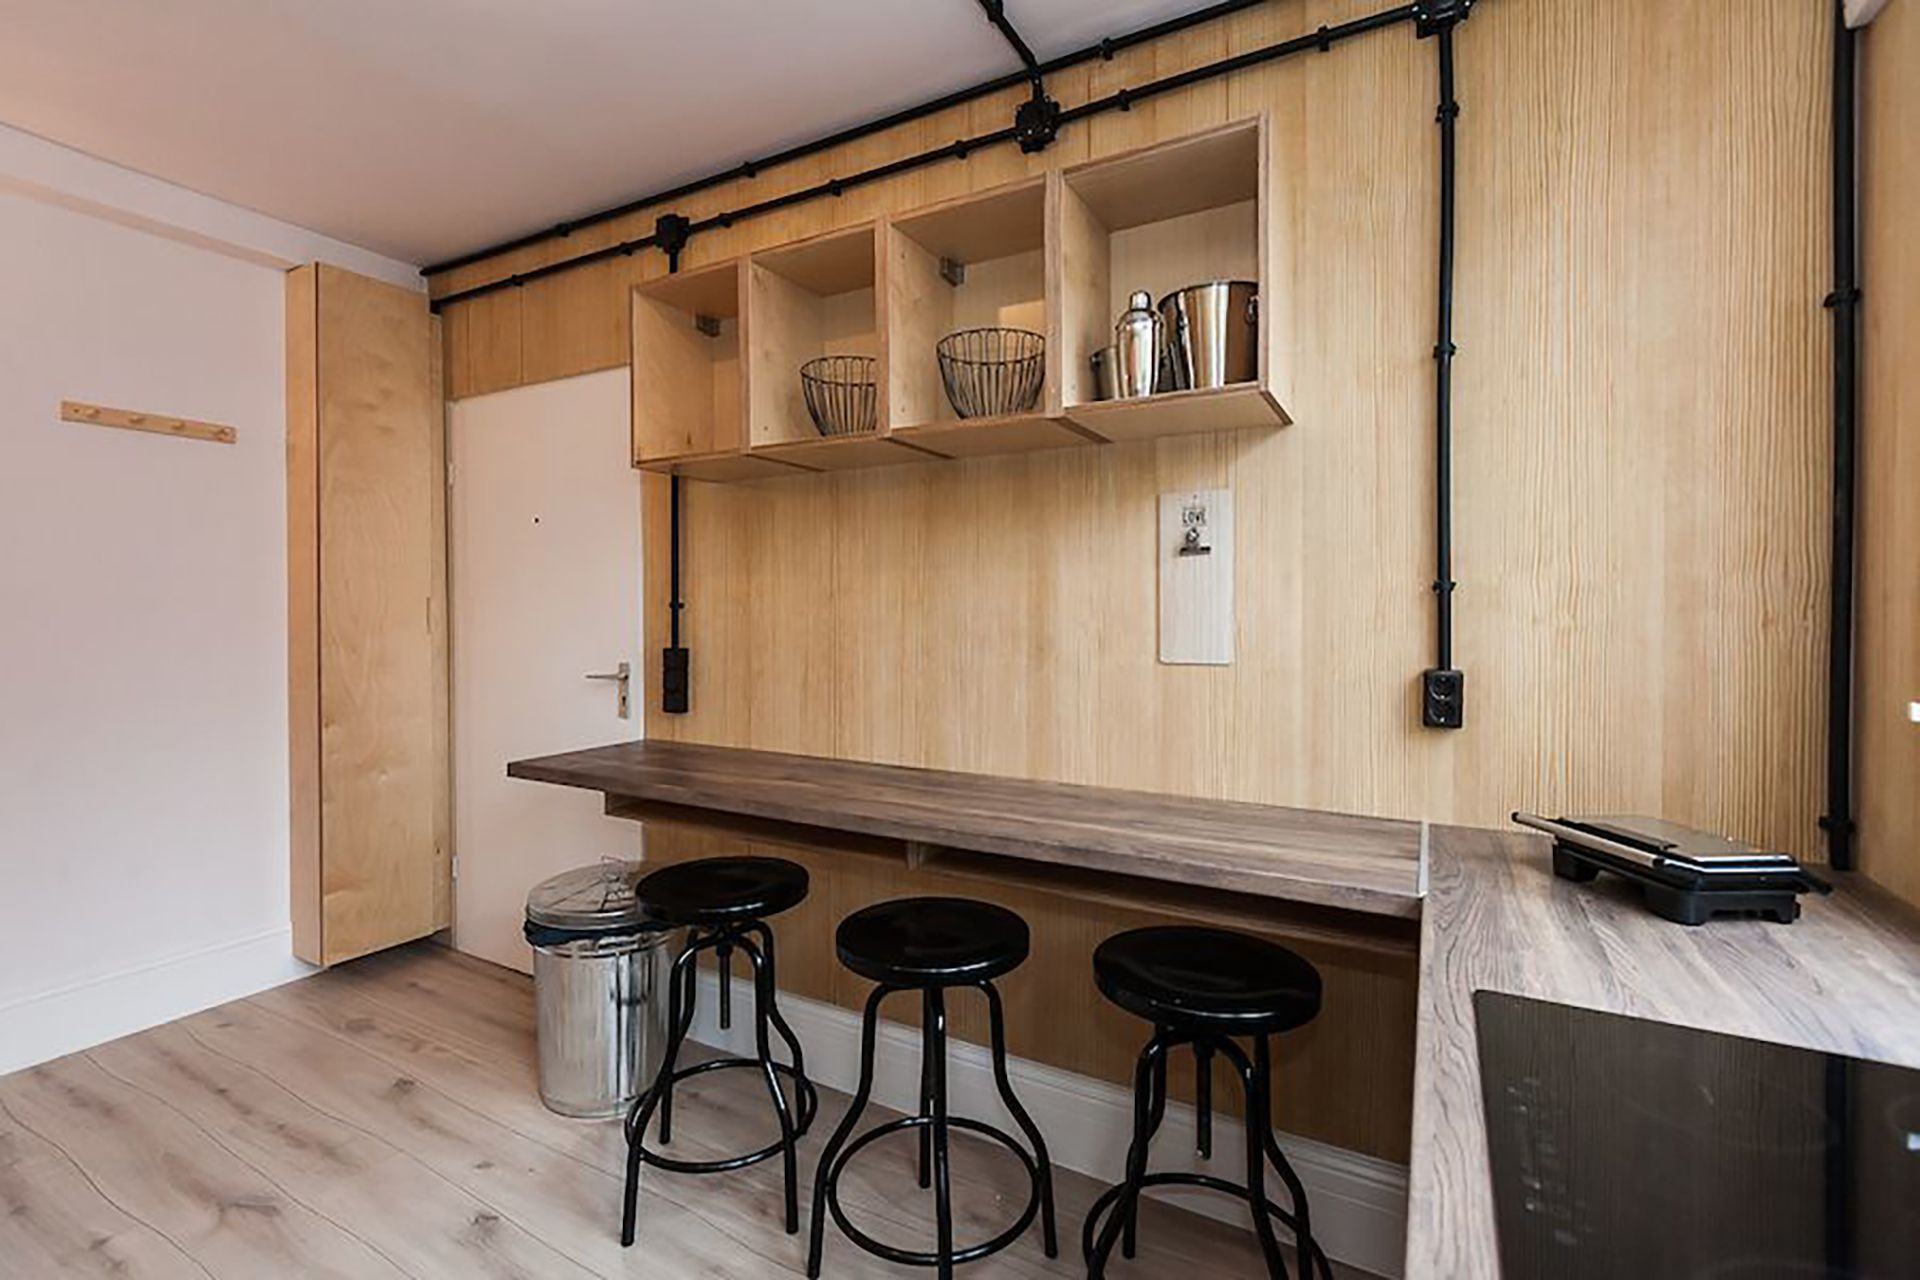 Private Room - Small apartment to rent in Berlin BILE-LE96-1063-2